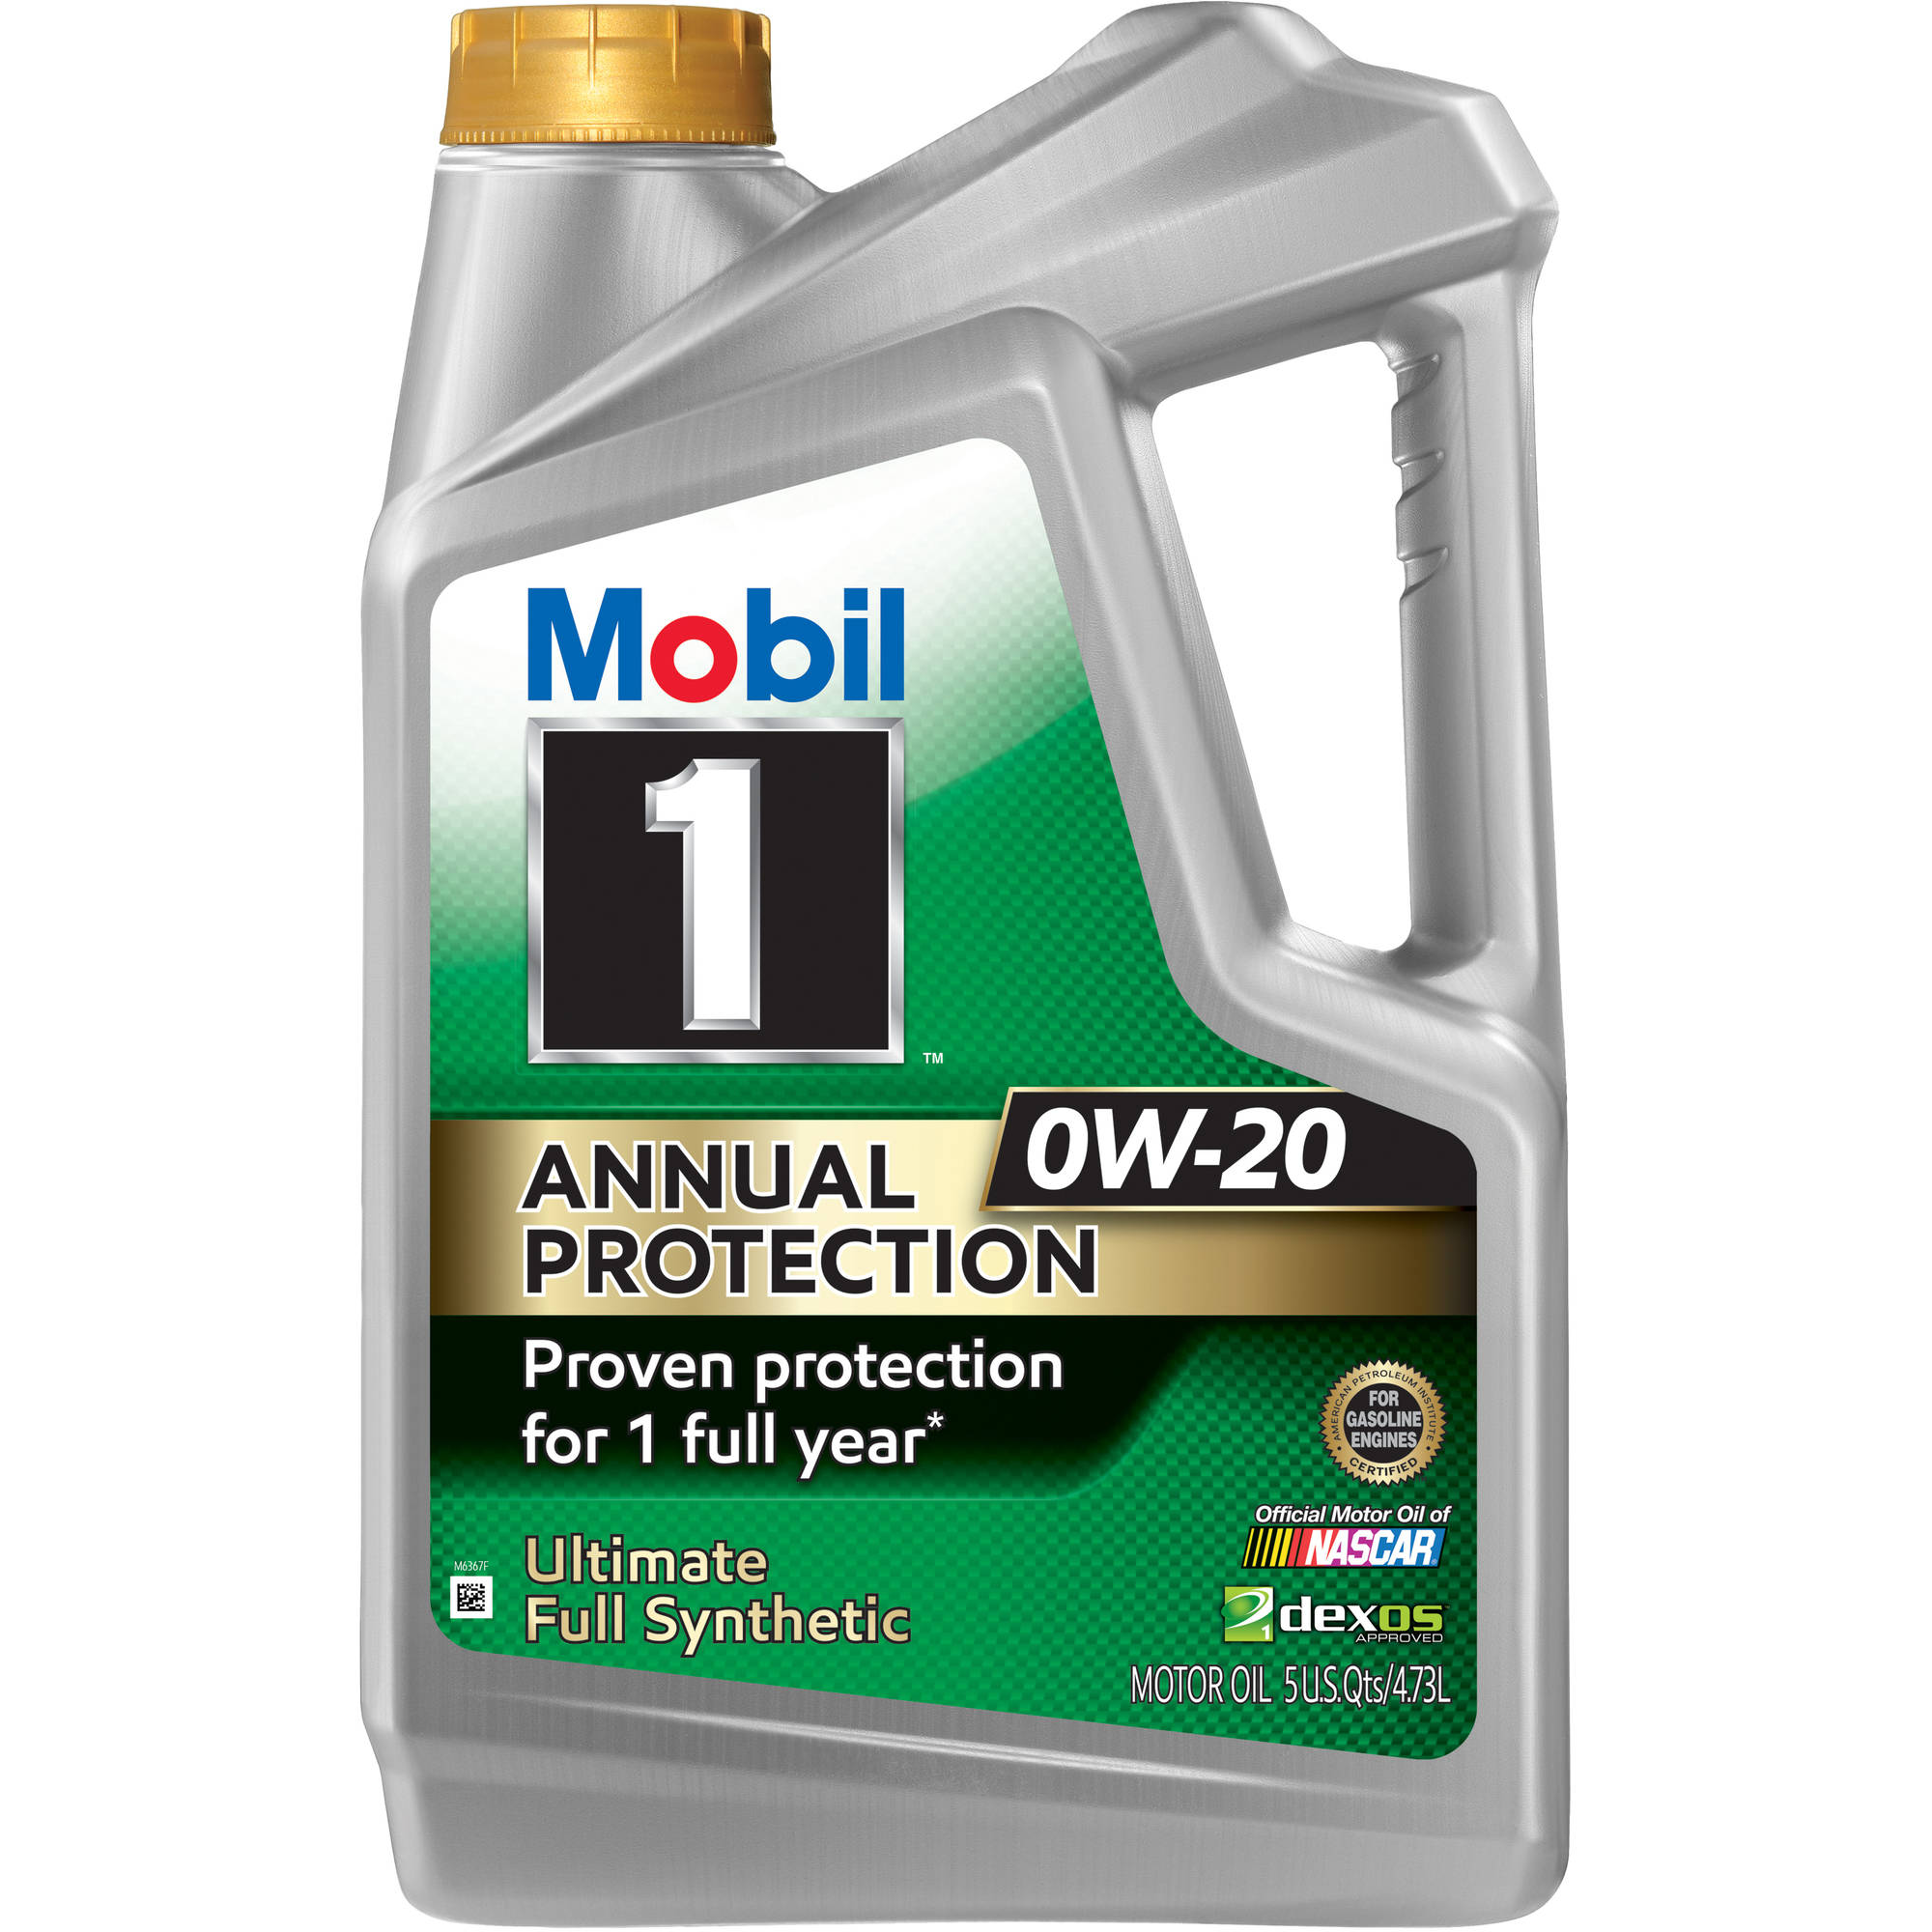 Mobil 1 Annual Protection 0W-20